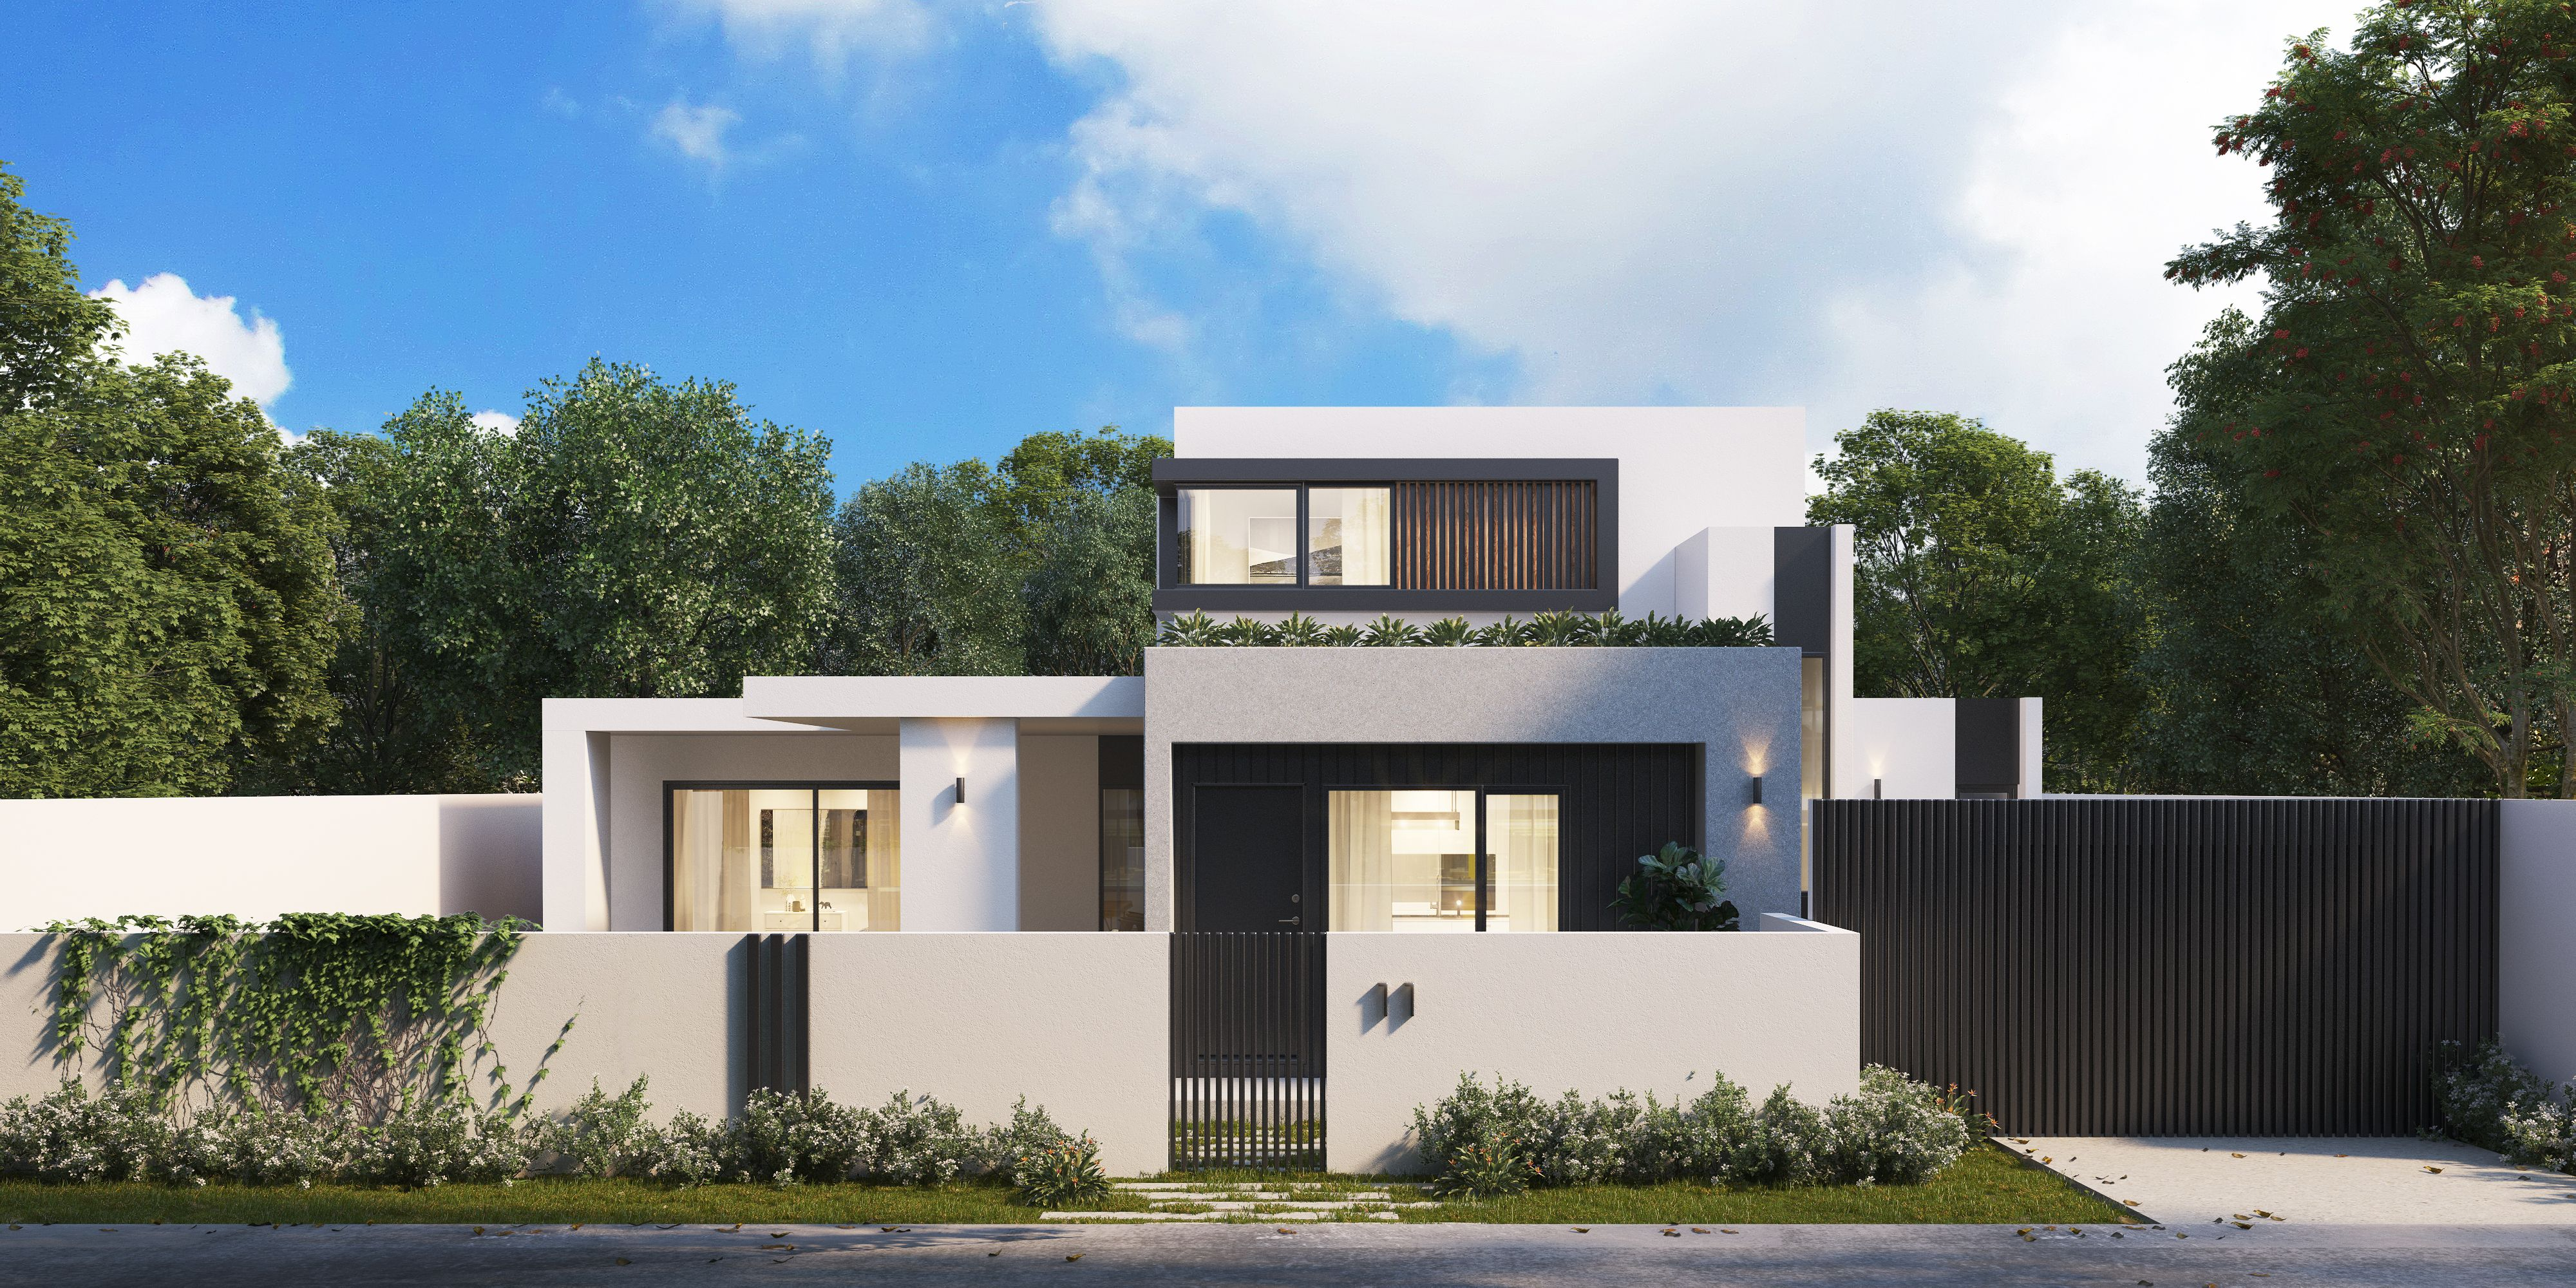 Exterior Facade Of Modern Cubic Double Storey House Designed By L8 Studio Modern House Plans Modern House House Plans